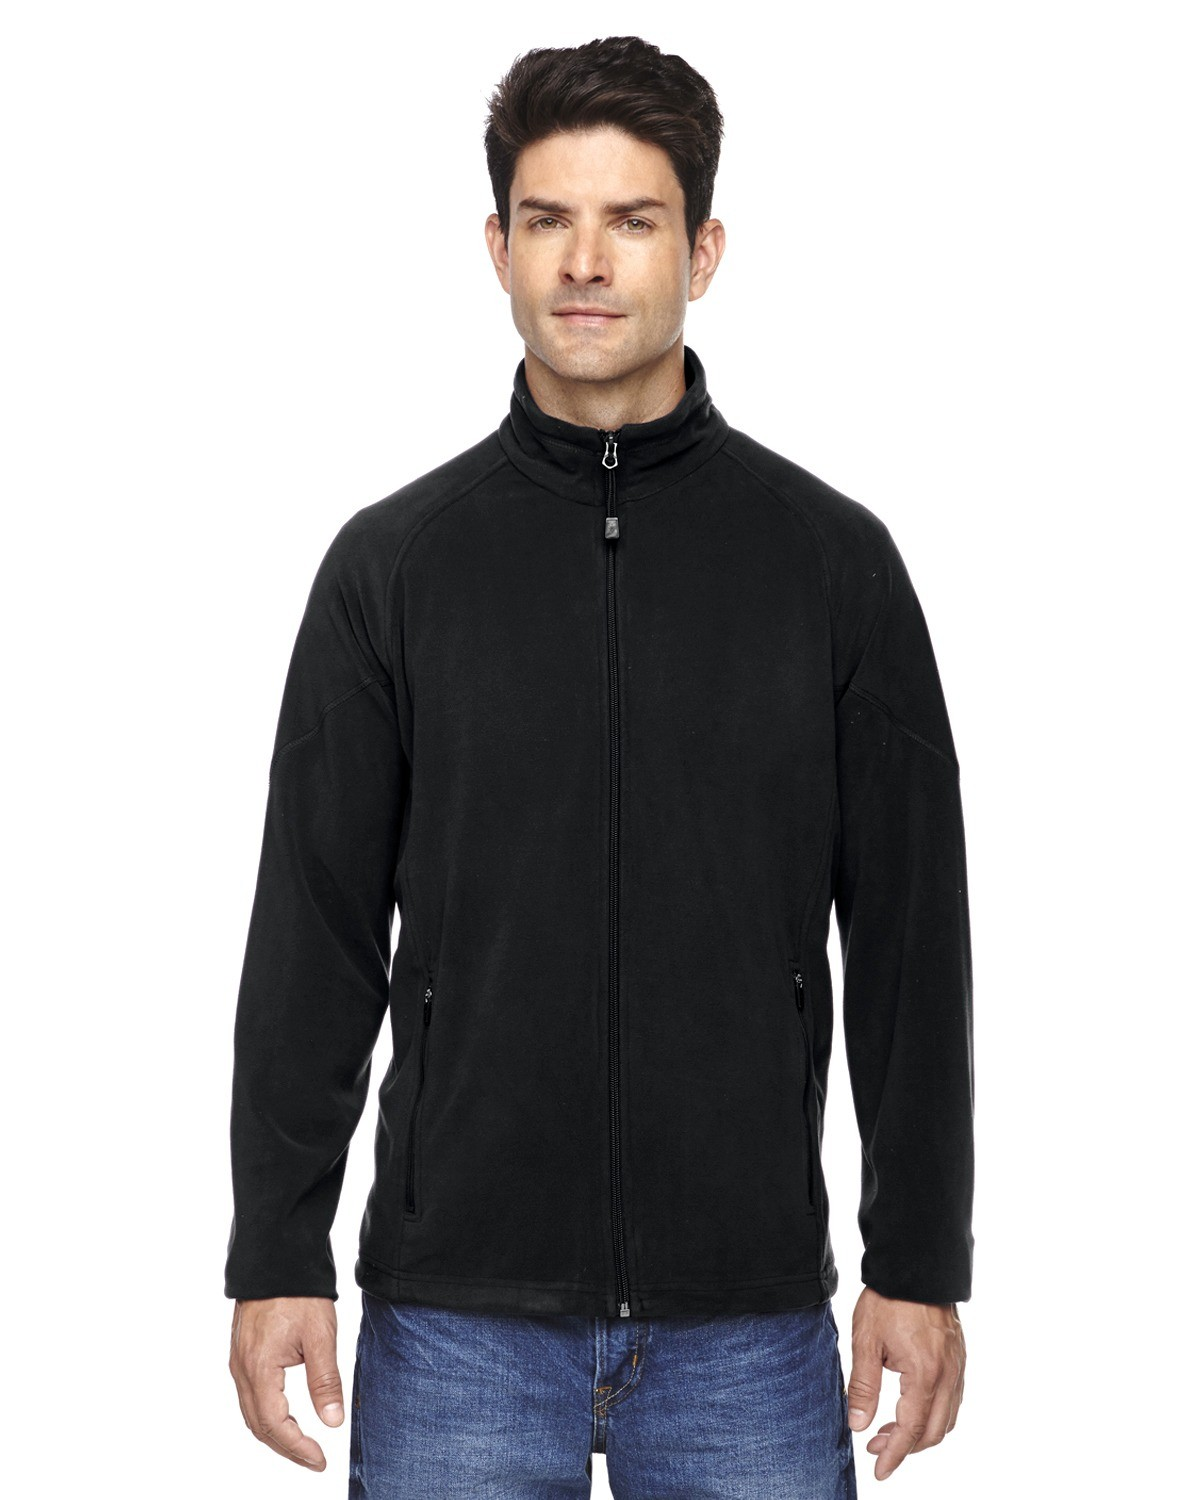 Men's Microfleece Unlined Jacket